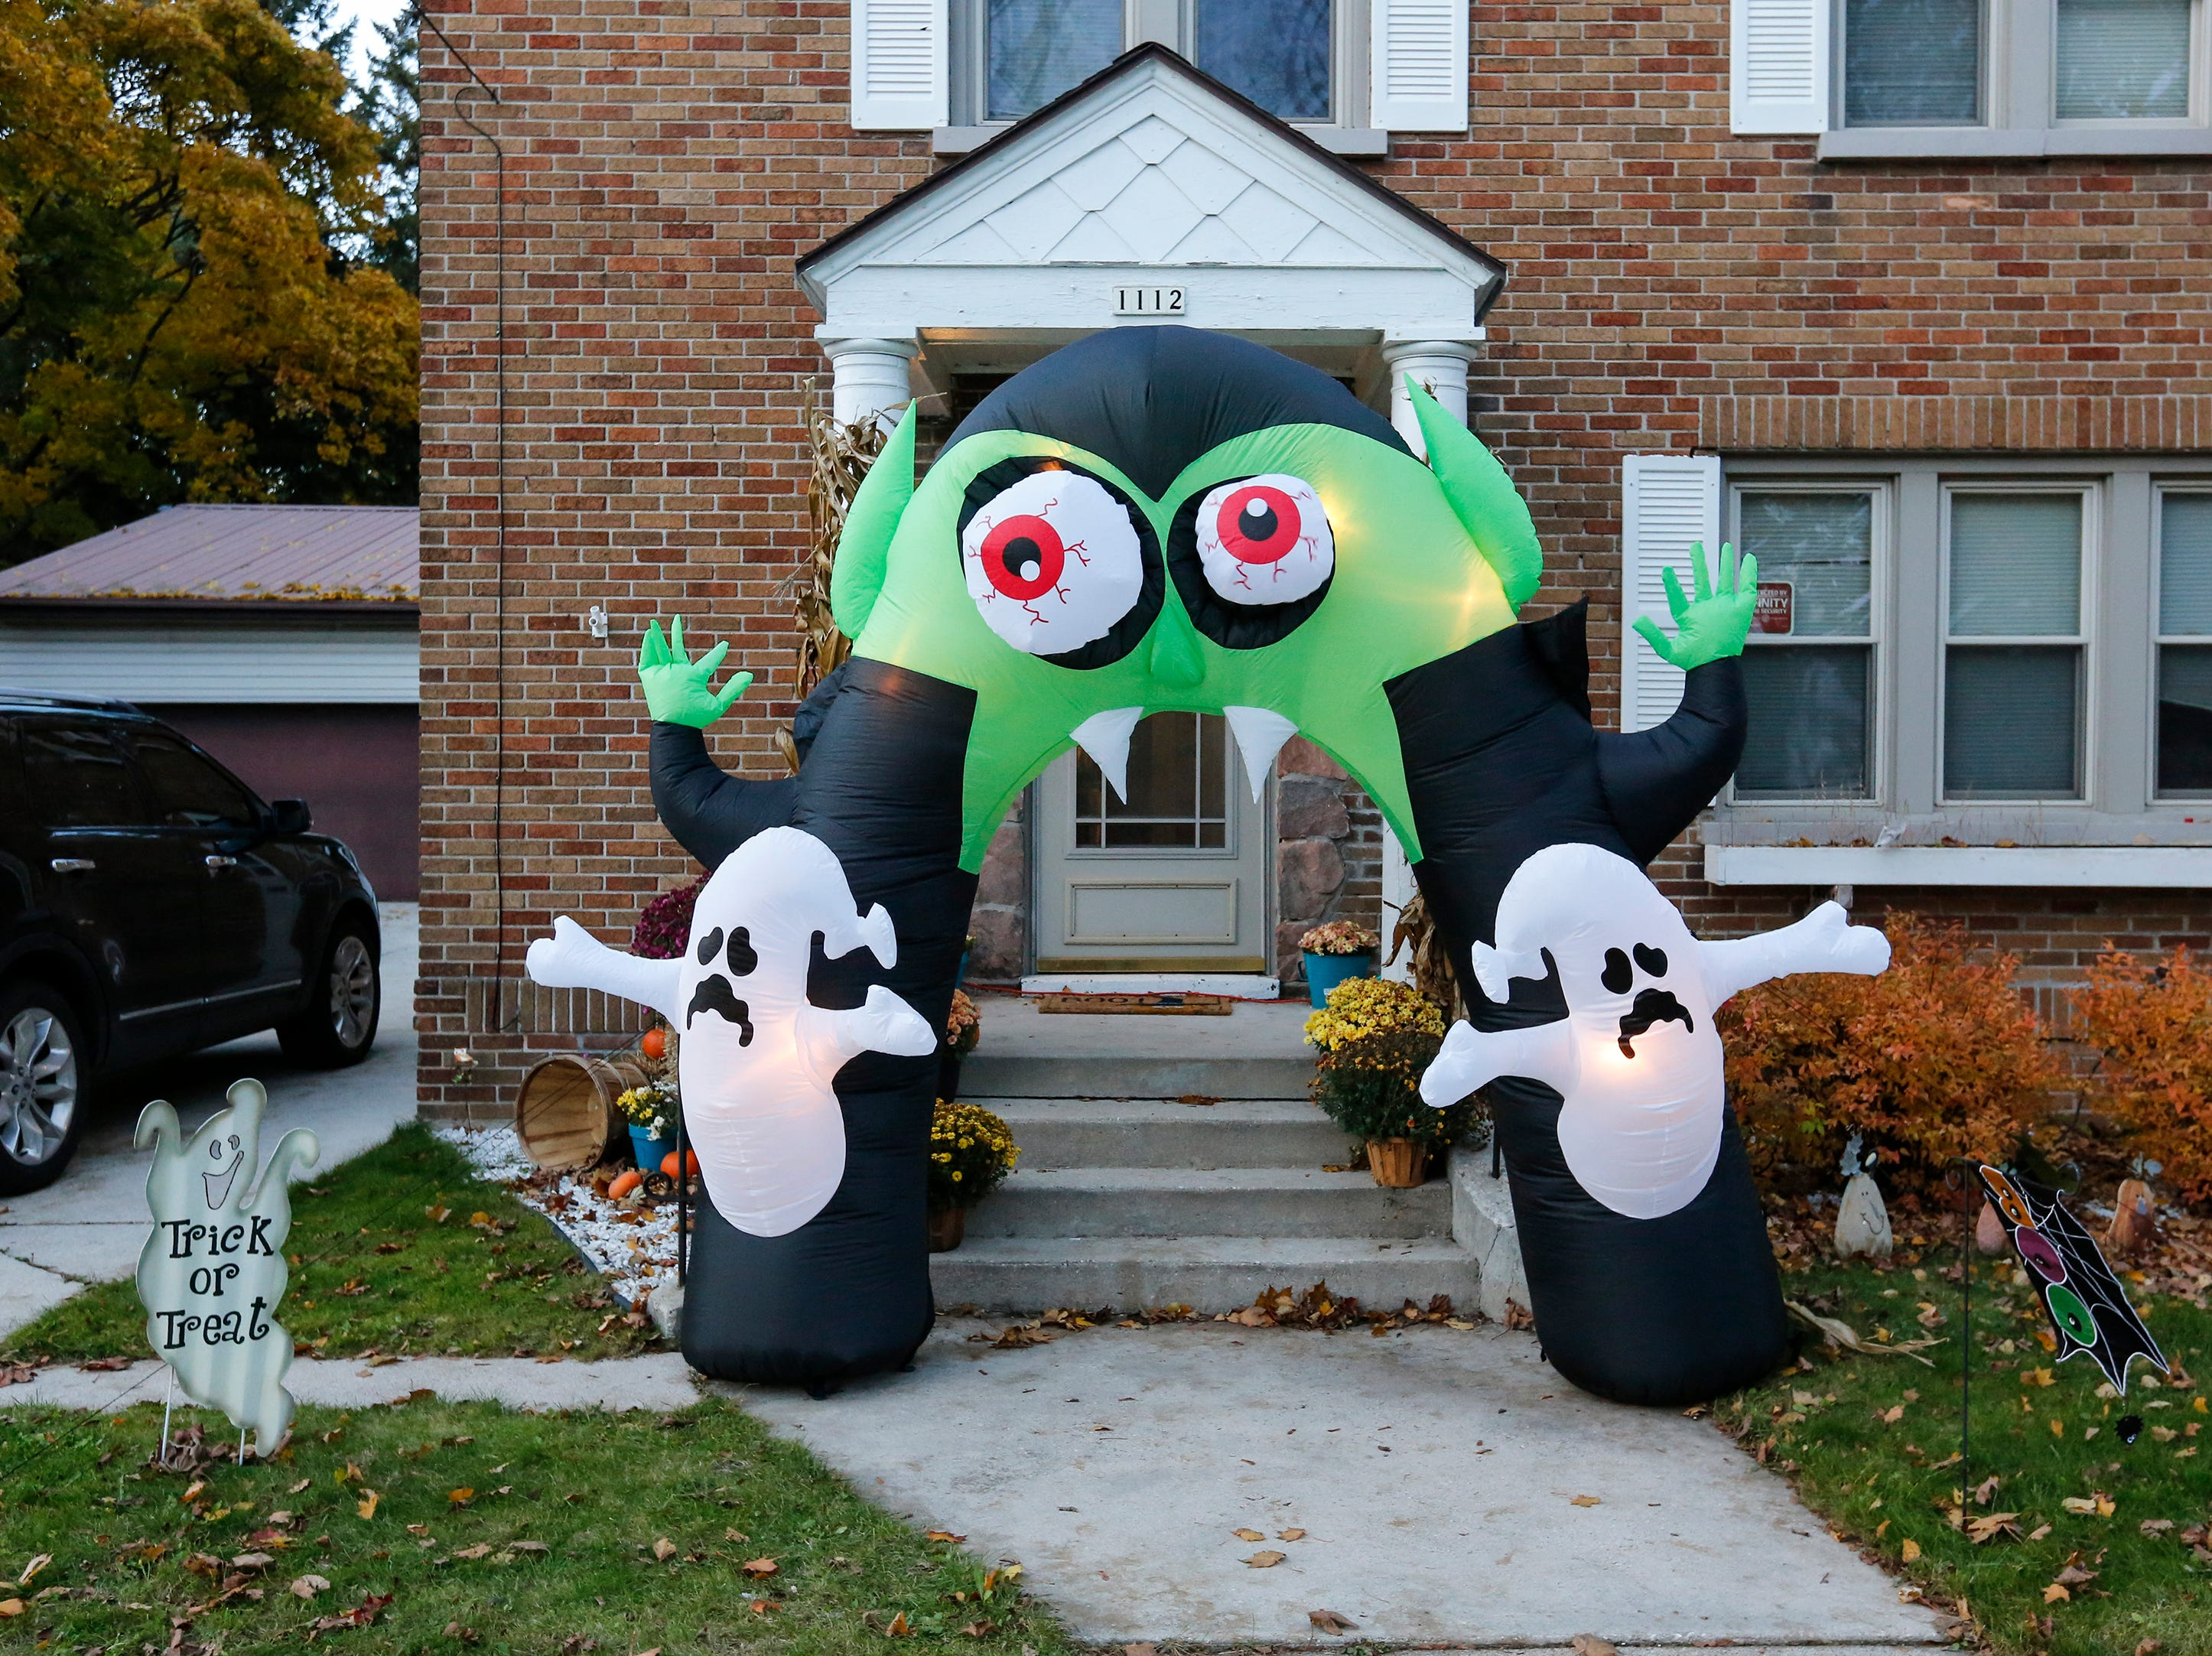 a festive door display during trick or treating on Halloween Wednesday, October 31, 2018, in Manitowoc, Wis. Joshua Clark/USA TODAY NETWORK-Wisconsin